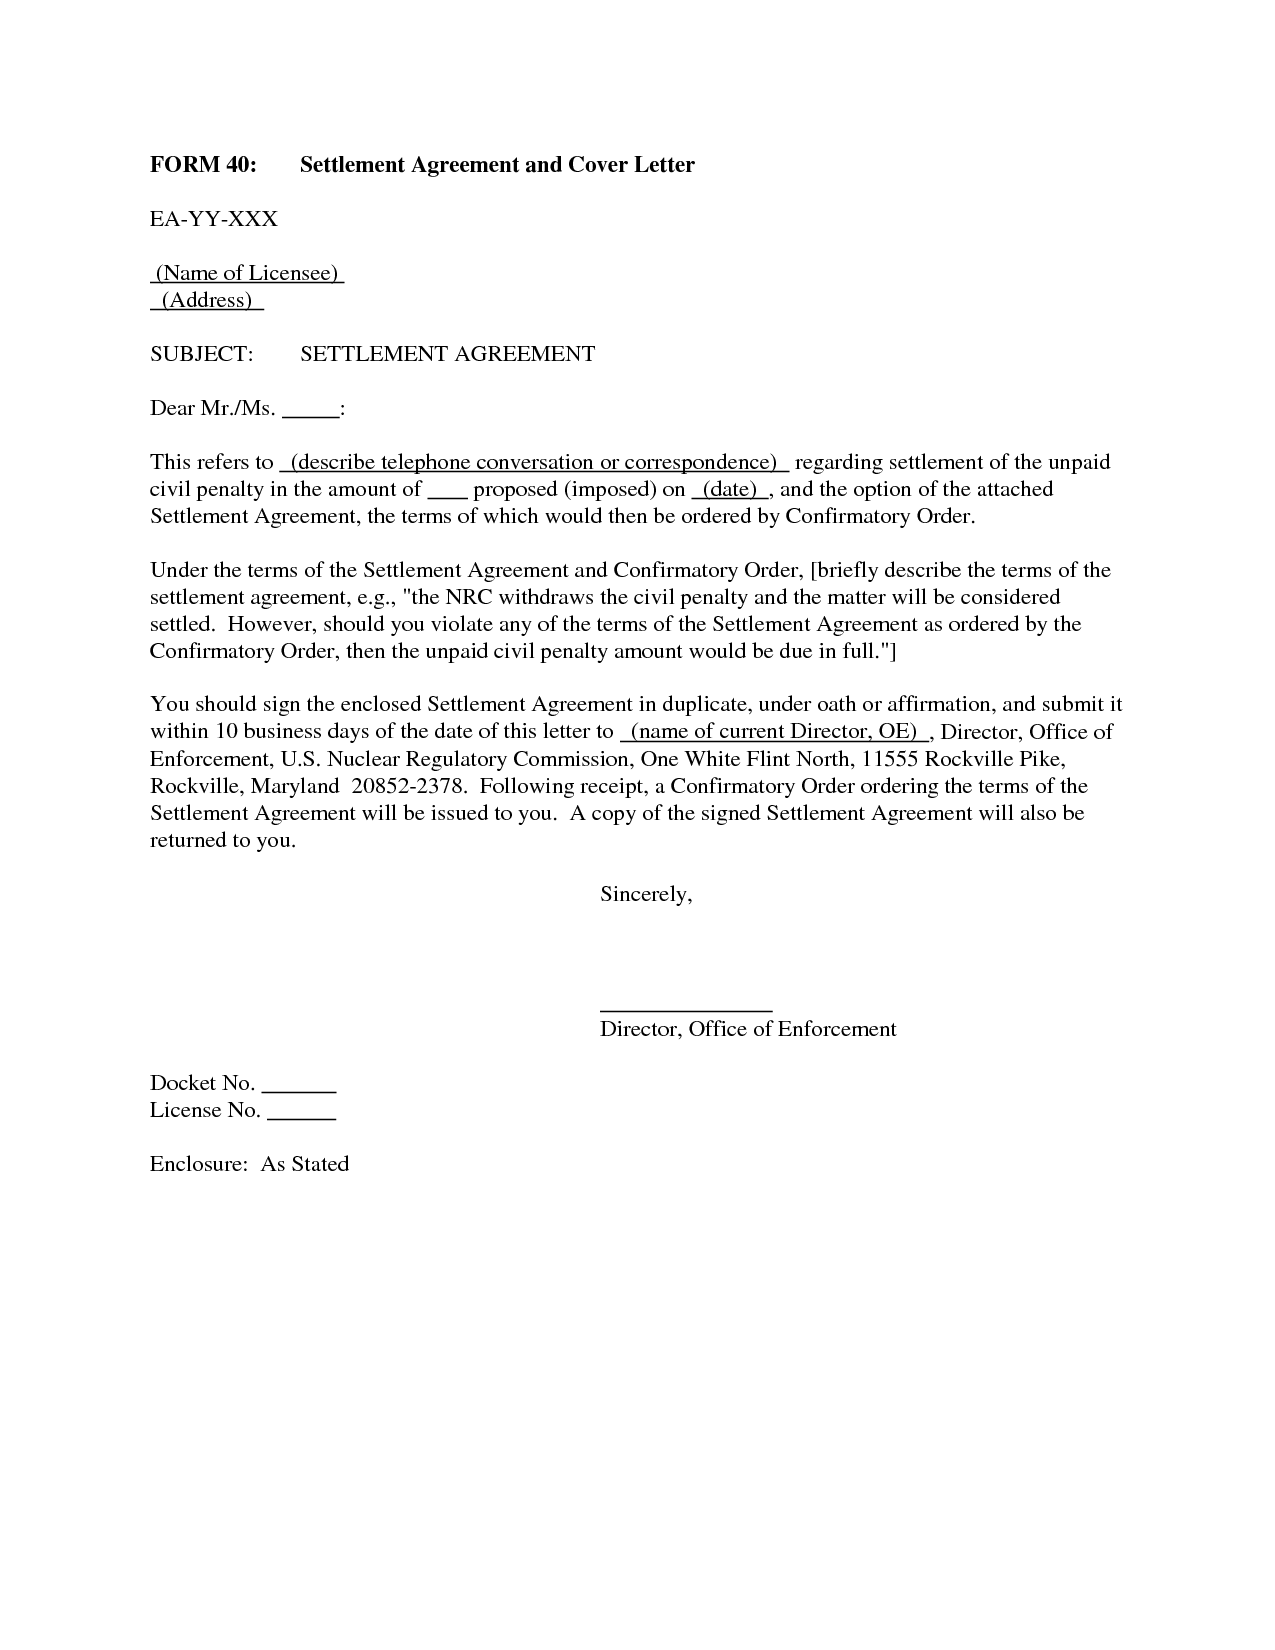 suretyship agreement template - sample cancellation waiver letter gold gym contract gym